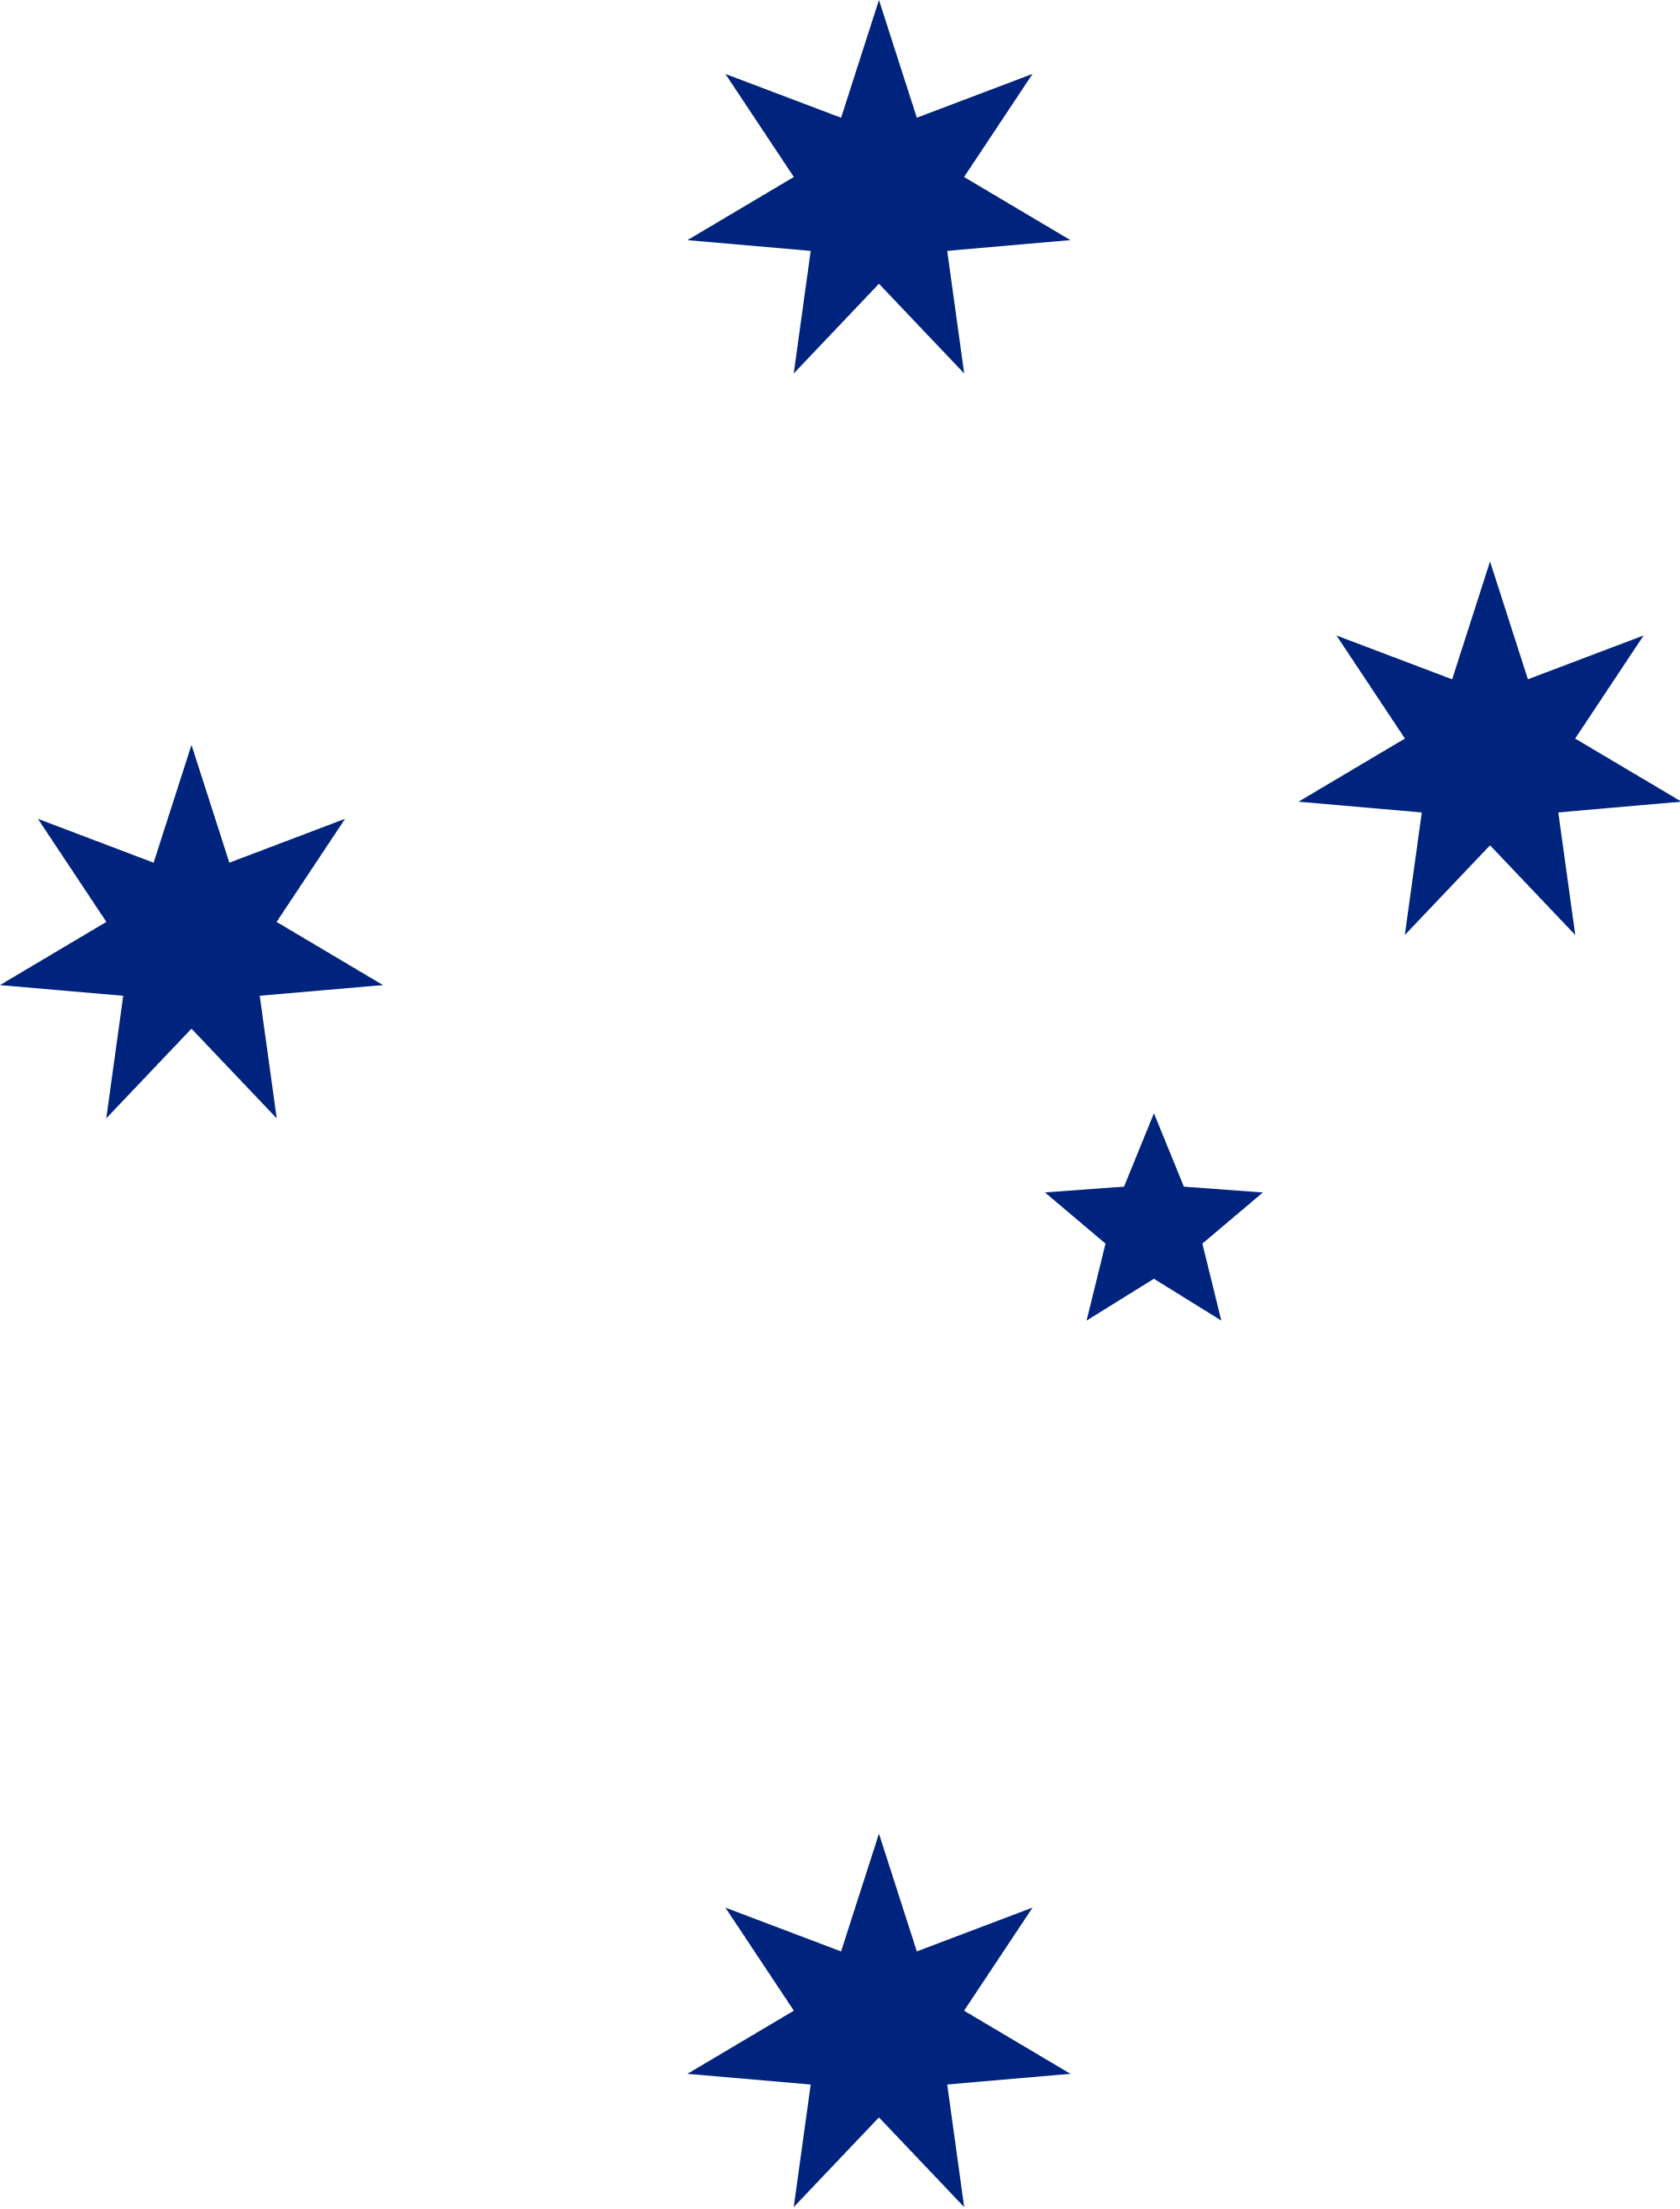 Cross and flag clipart clipart File:Southern Cross (Australia).svg - Wikimedia Commons clipart